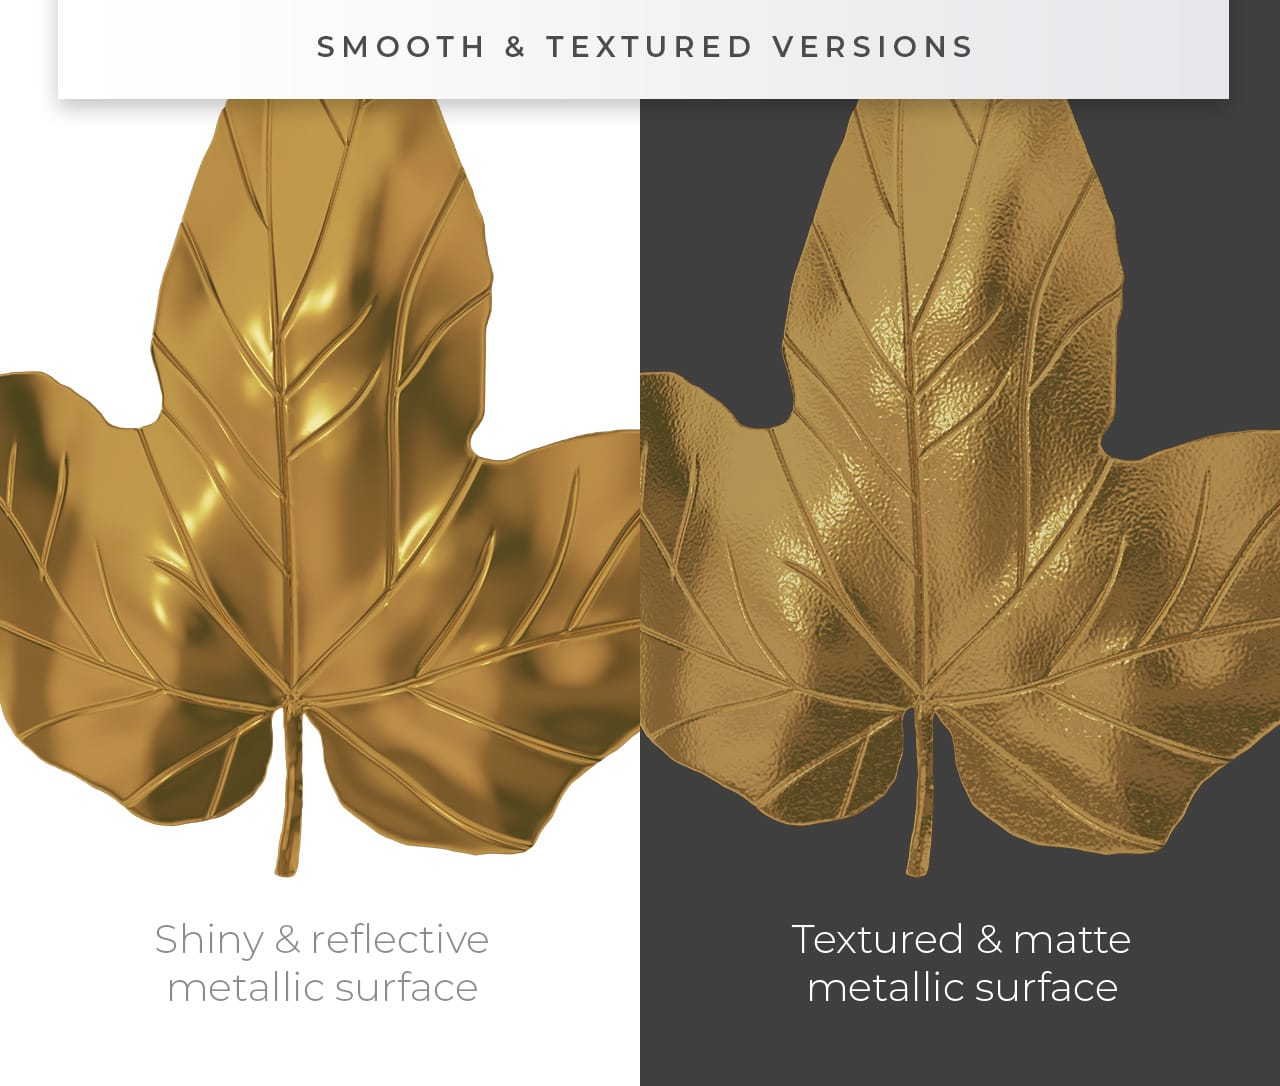 Smooth & Textured Versions